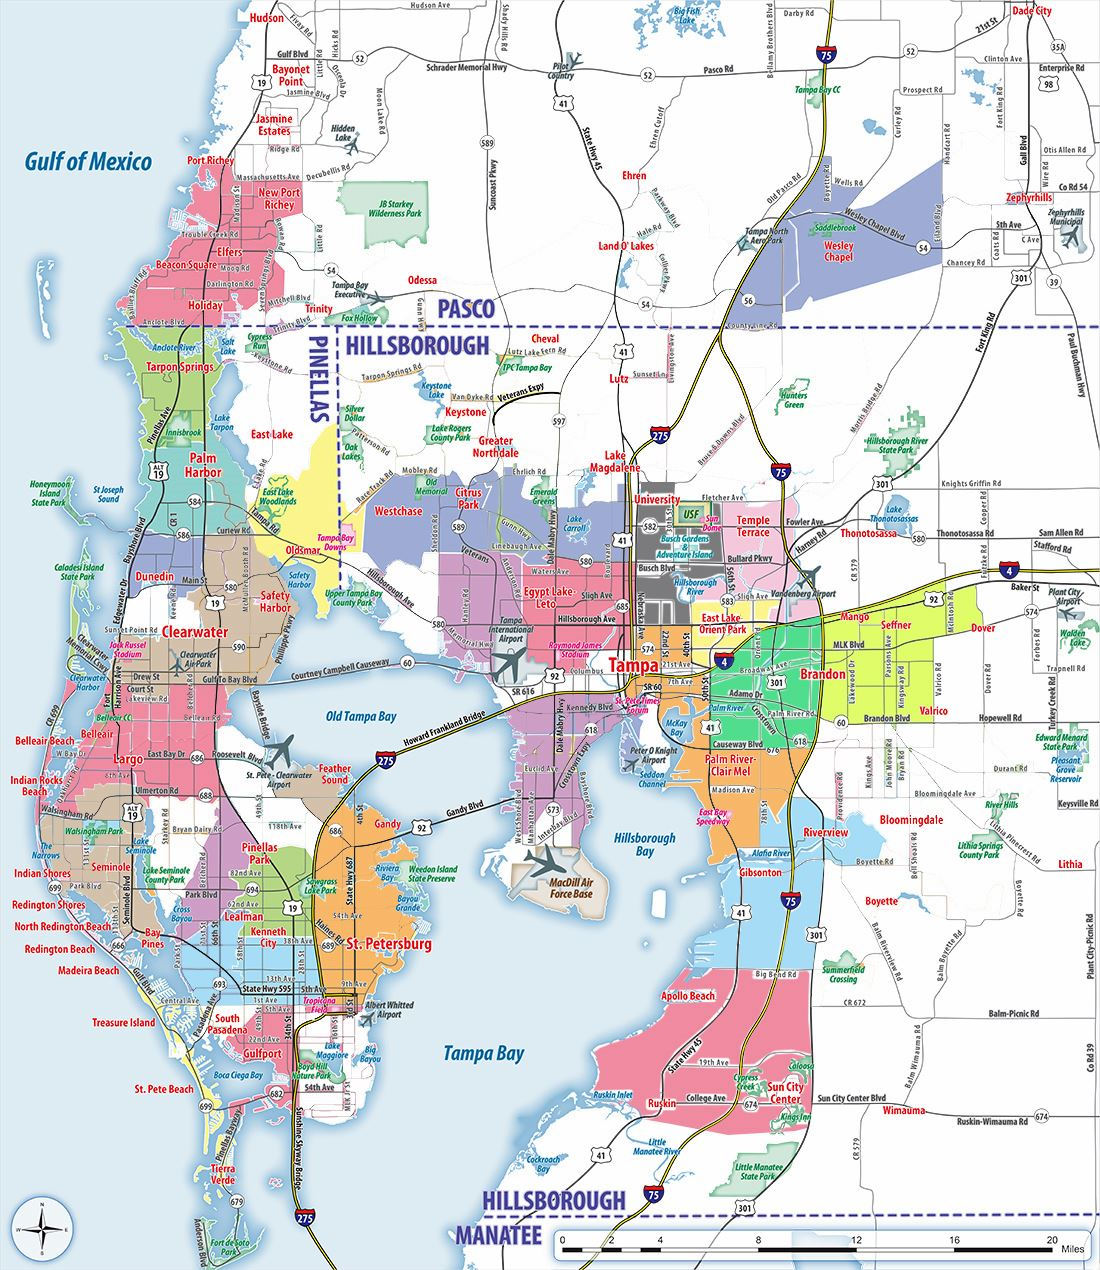 Map Of Tampa Bay Area Large Tampa Maps for Free Download and Print | High Resolution and